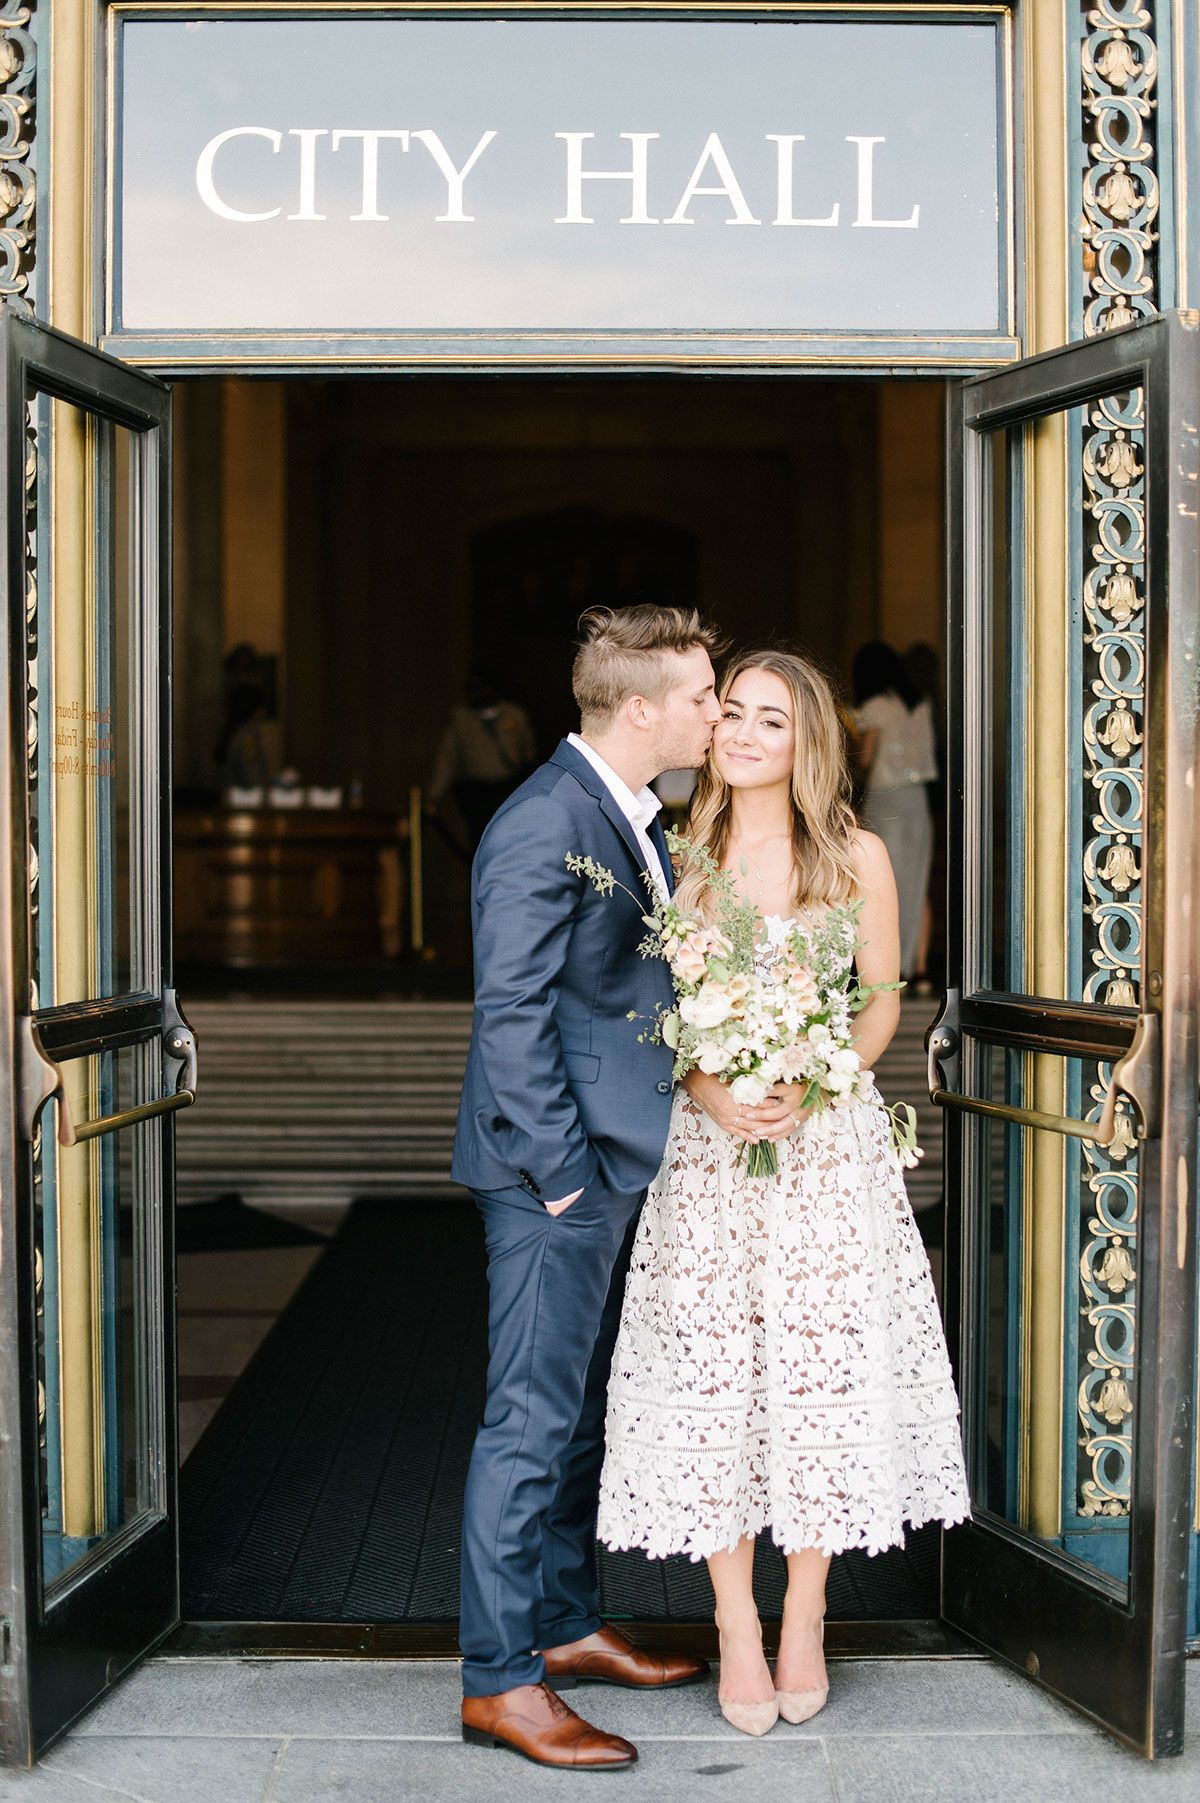 civil wedding ceremony dresses Fashion trends outfit ideas what to wear fashion news and runway looks Receptions Wedding and Marriage certificate